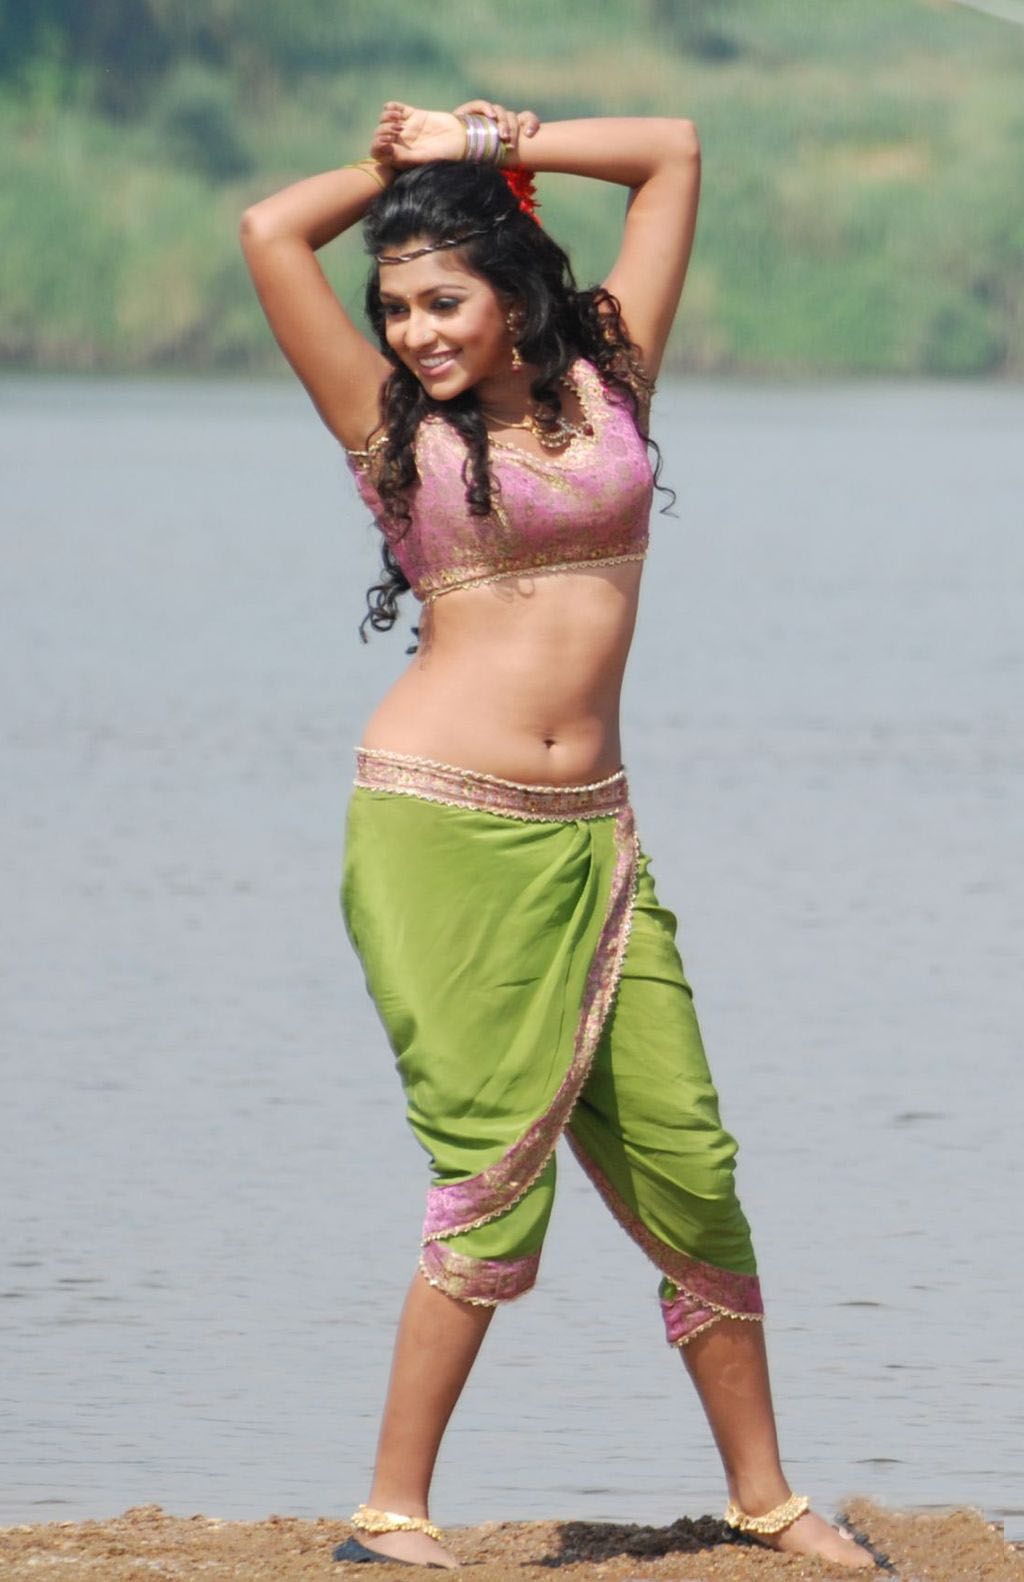 Amala Paul Sex Movie pin on married indian beauties